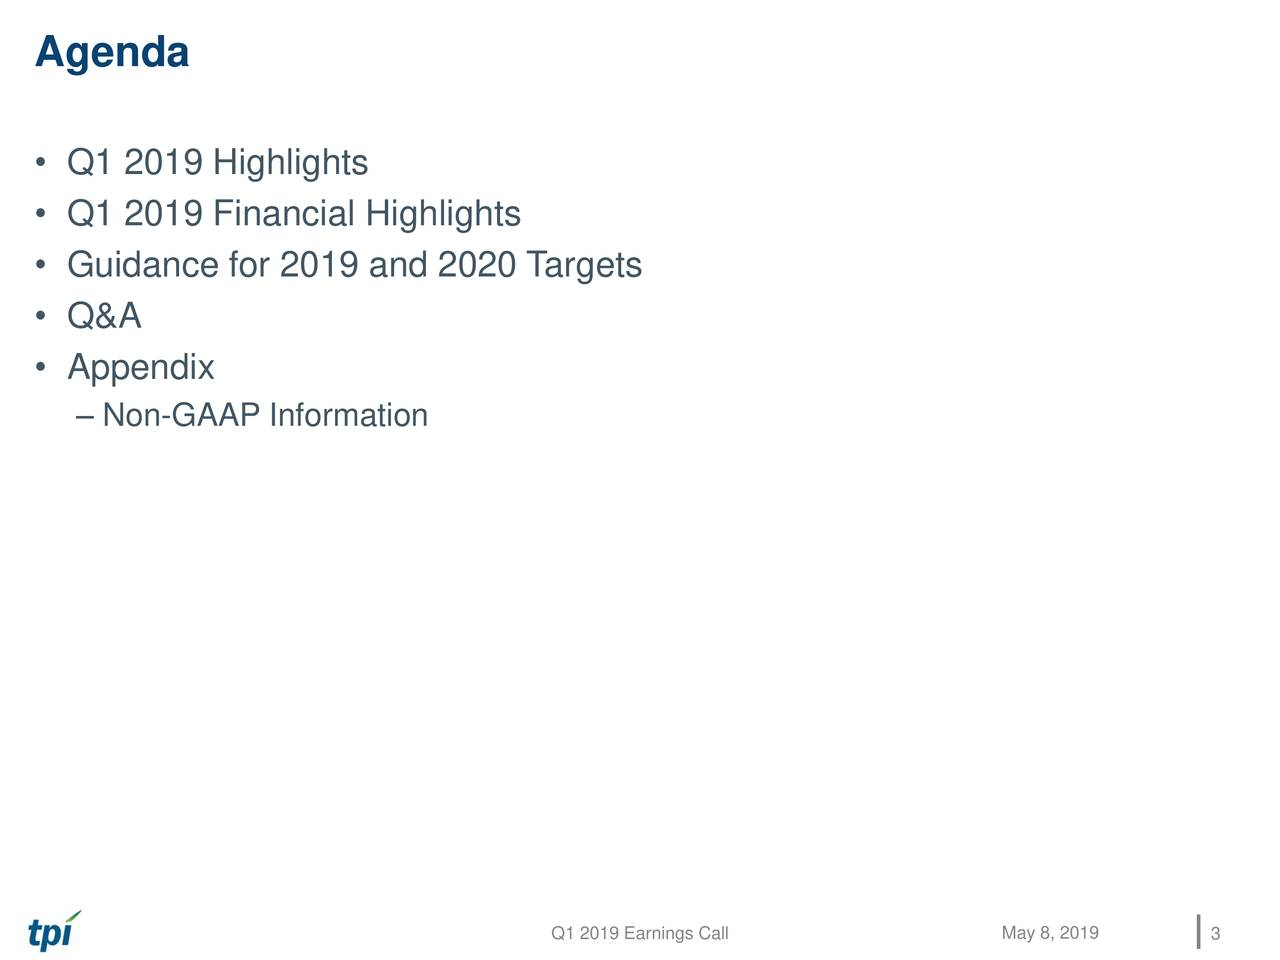 • Q1 2019 Highlights • Q1 2019 Financial Highlights • Guidance for 2019 and 2020 Targets • Q&A • Appendix – Non-GAAP Information Q1 2019 Earnings Call May 8, 2019 3